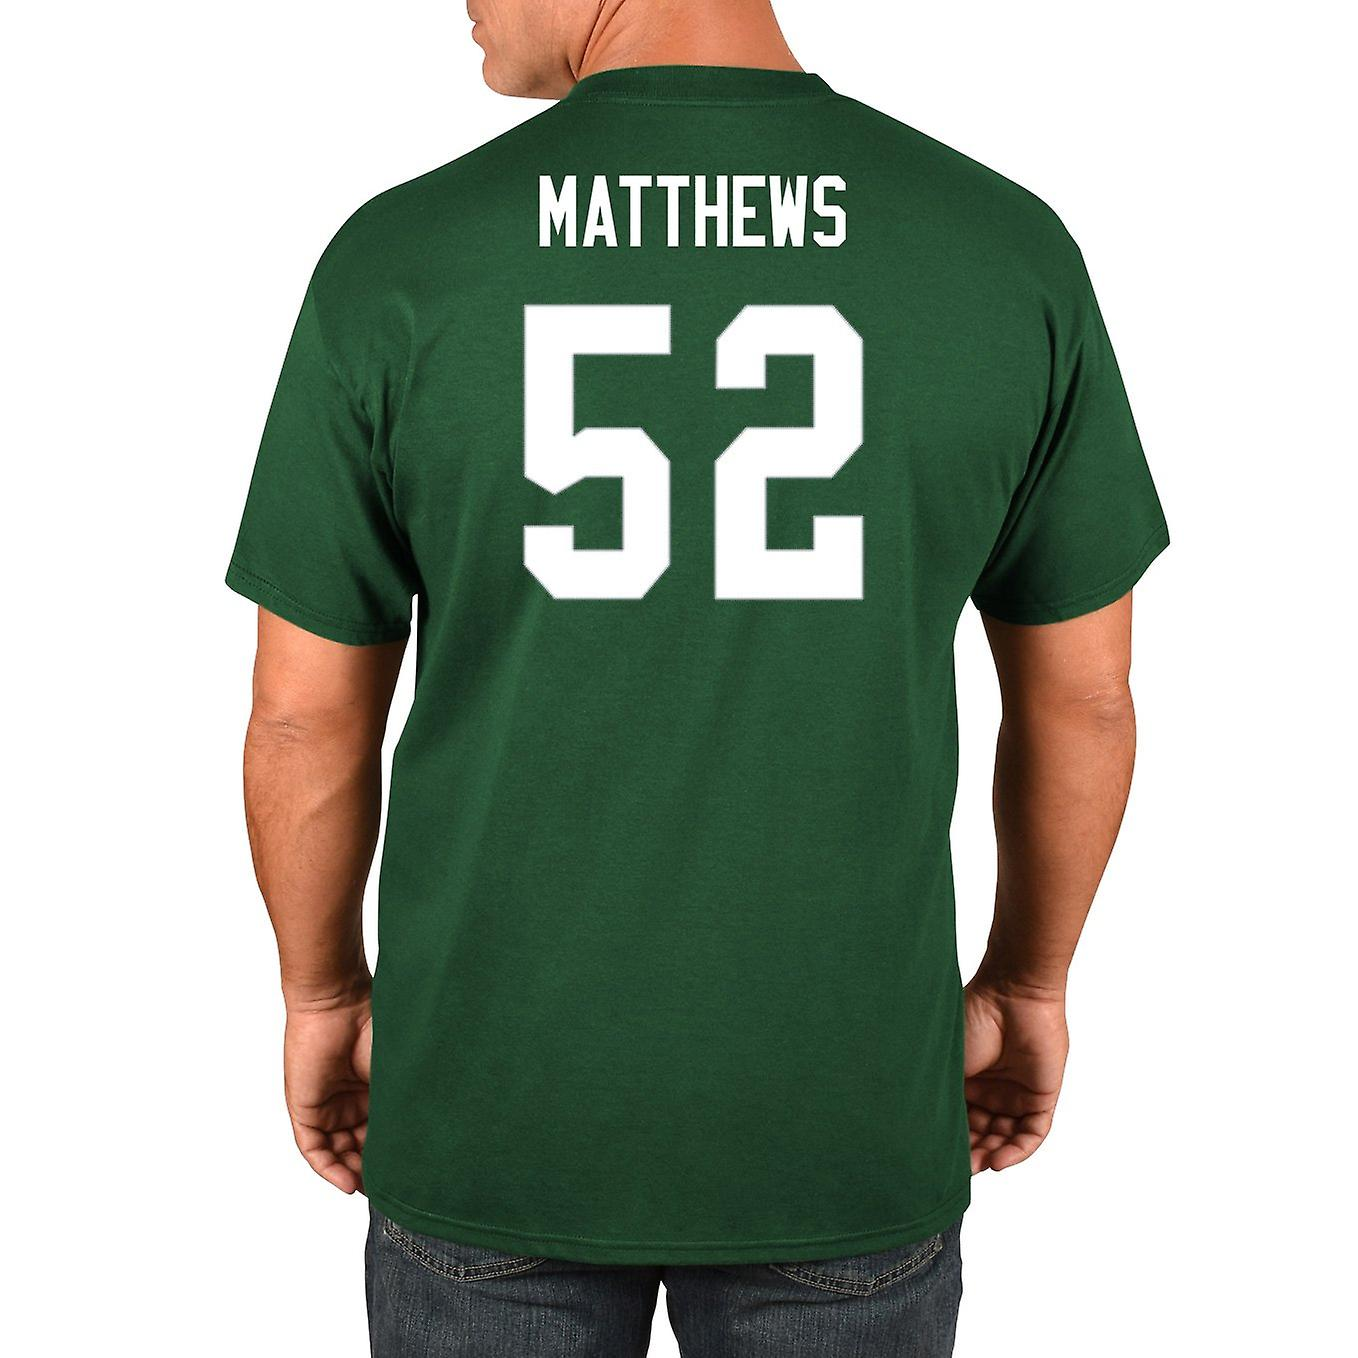 competitive price 78acc 13dc1 Majestic NFL shirt - Green Bay Packers clay Matthews #52